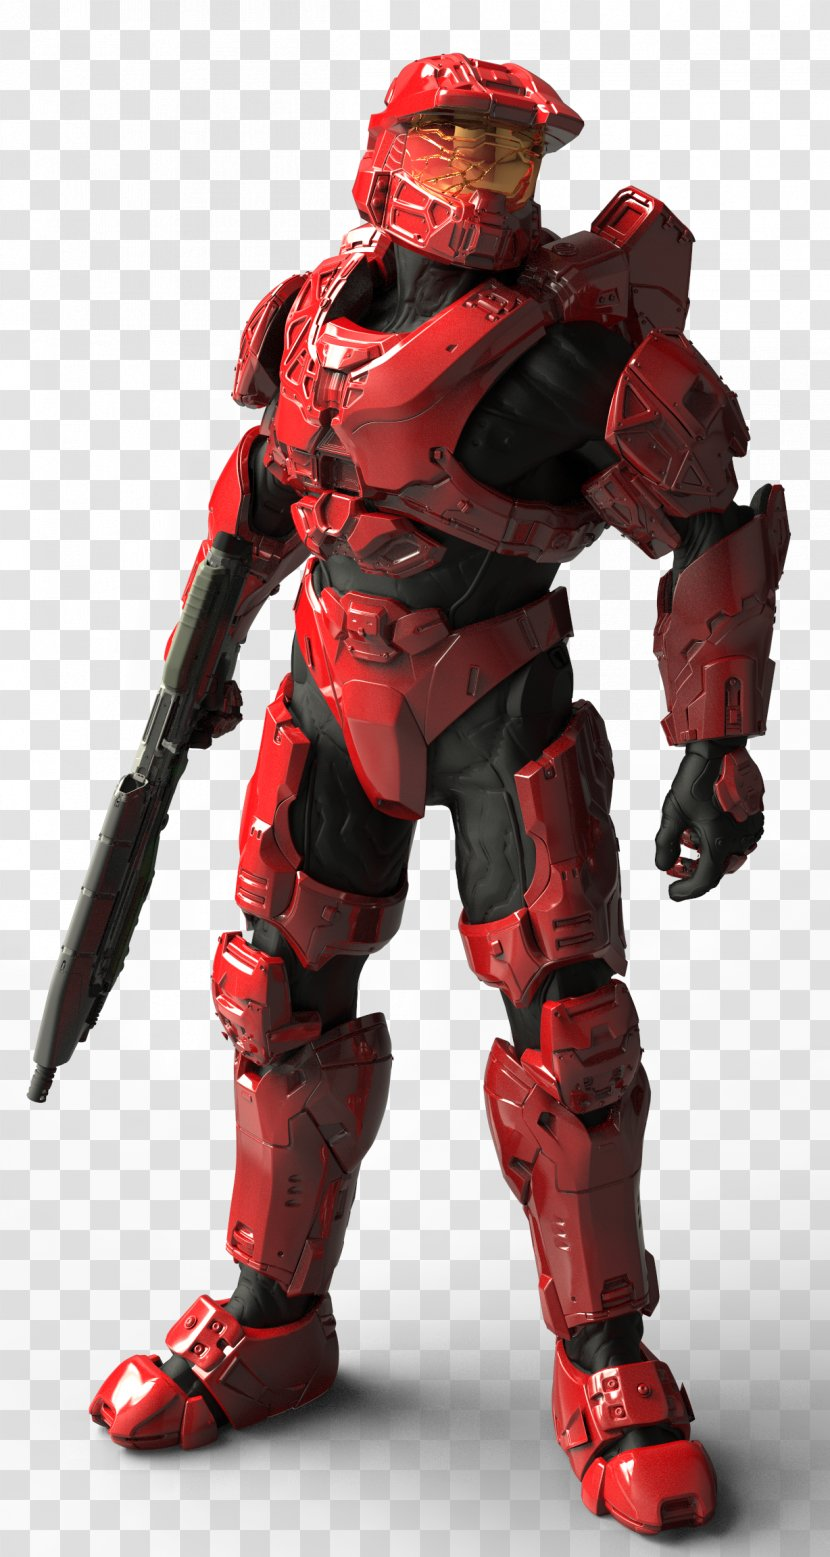 Halo 5 Guardians Halo The Master Chief Collection Reach 4 Combat